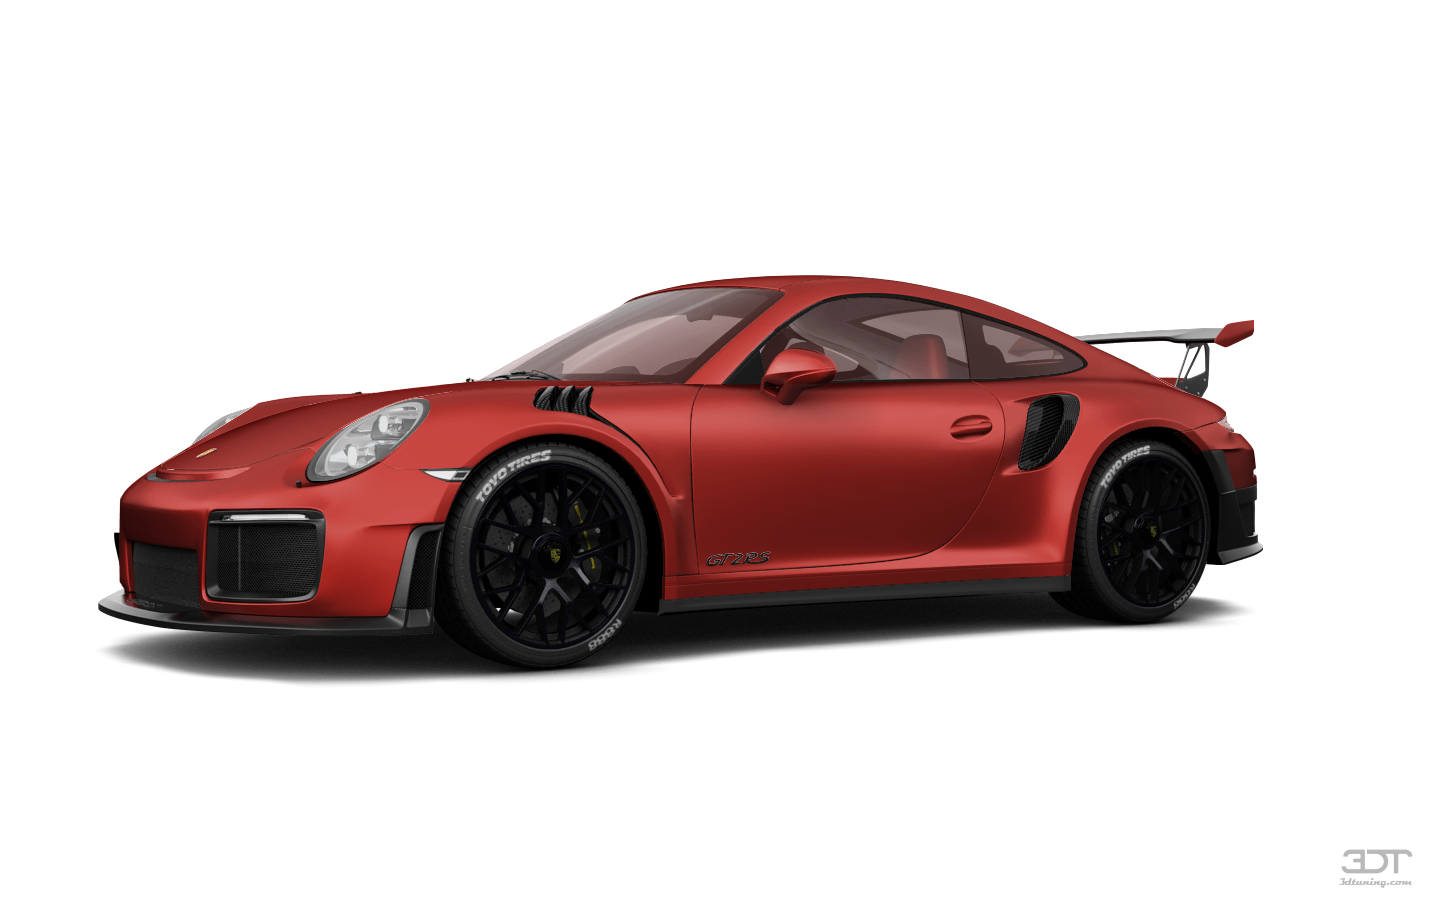 Porsche 911 Turbo S 2 Door Coupe 2014 tuning